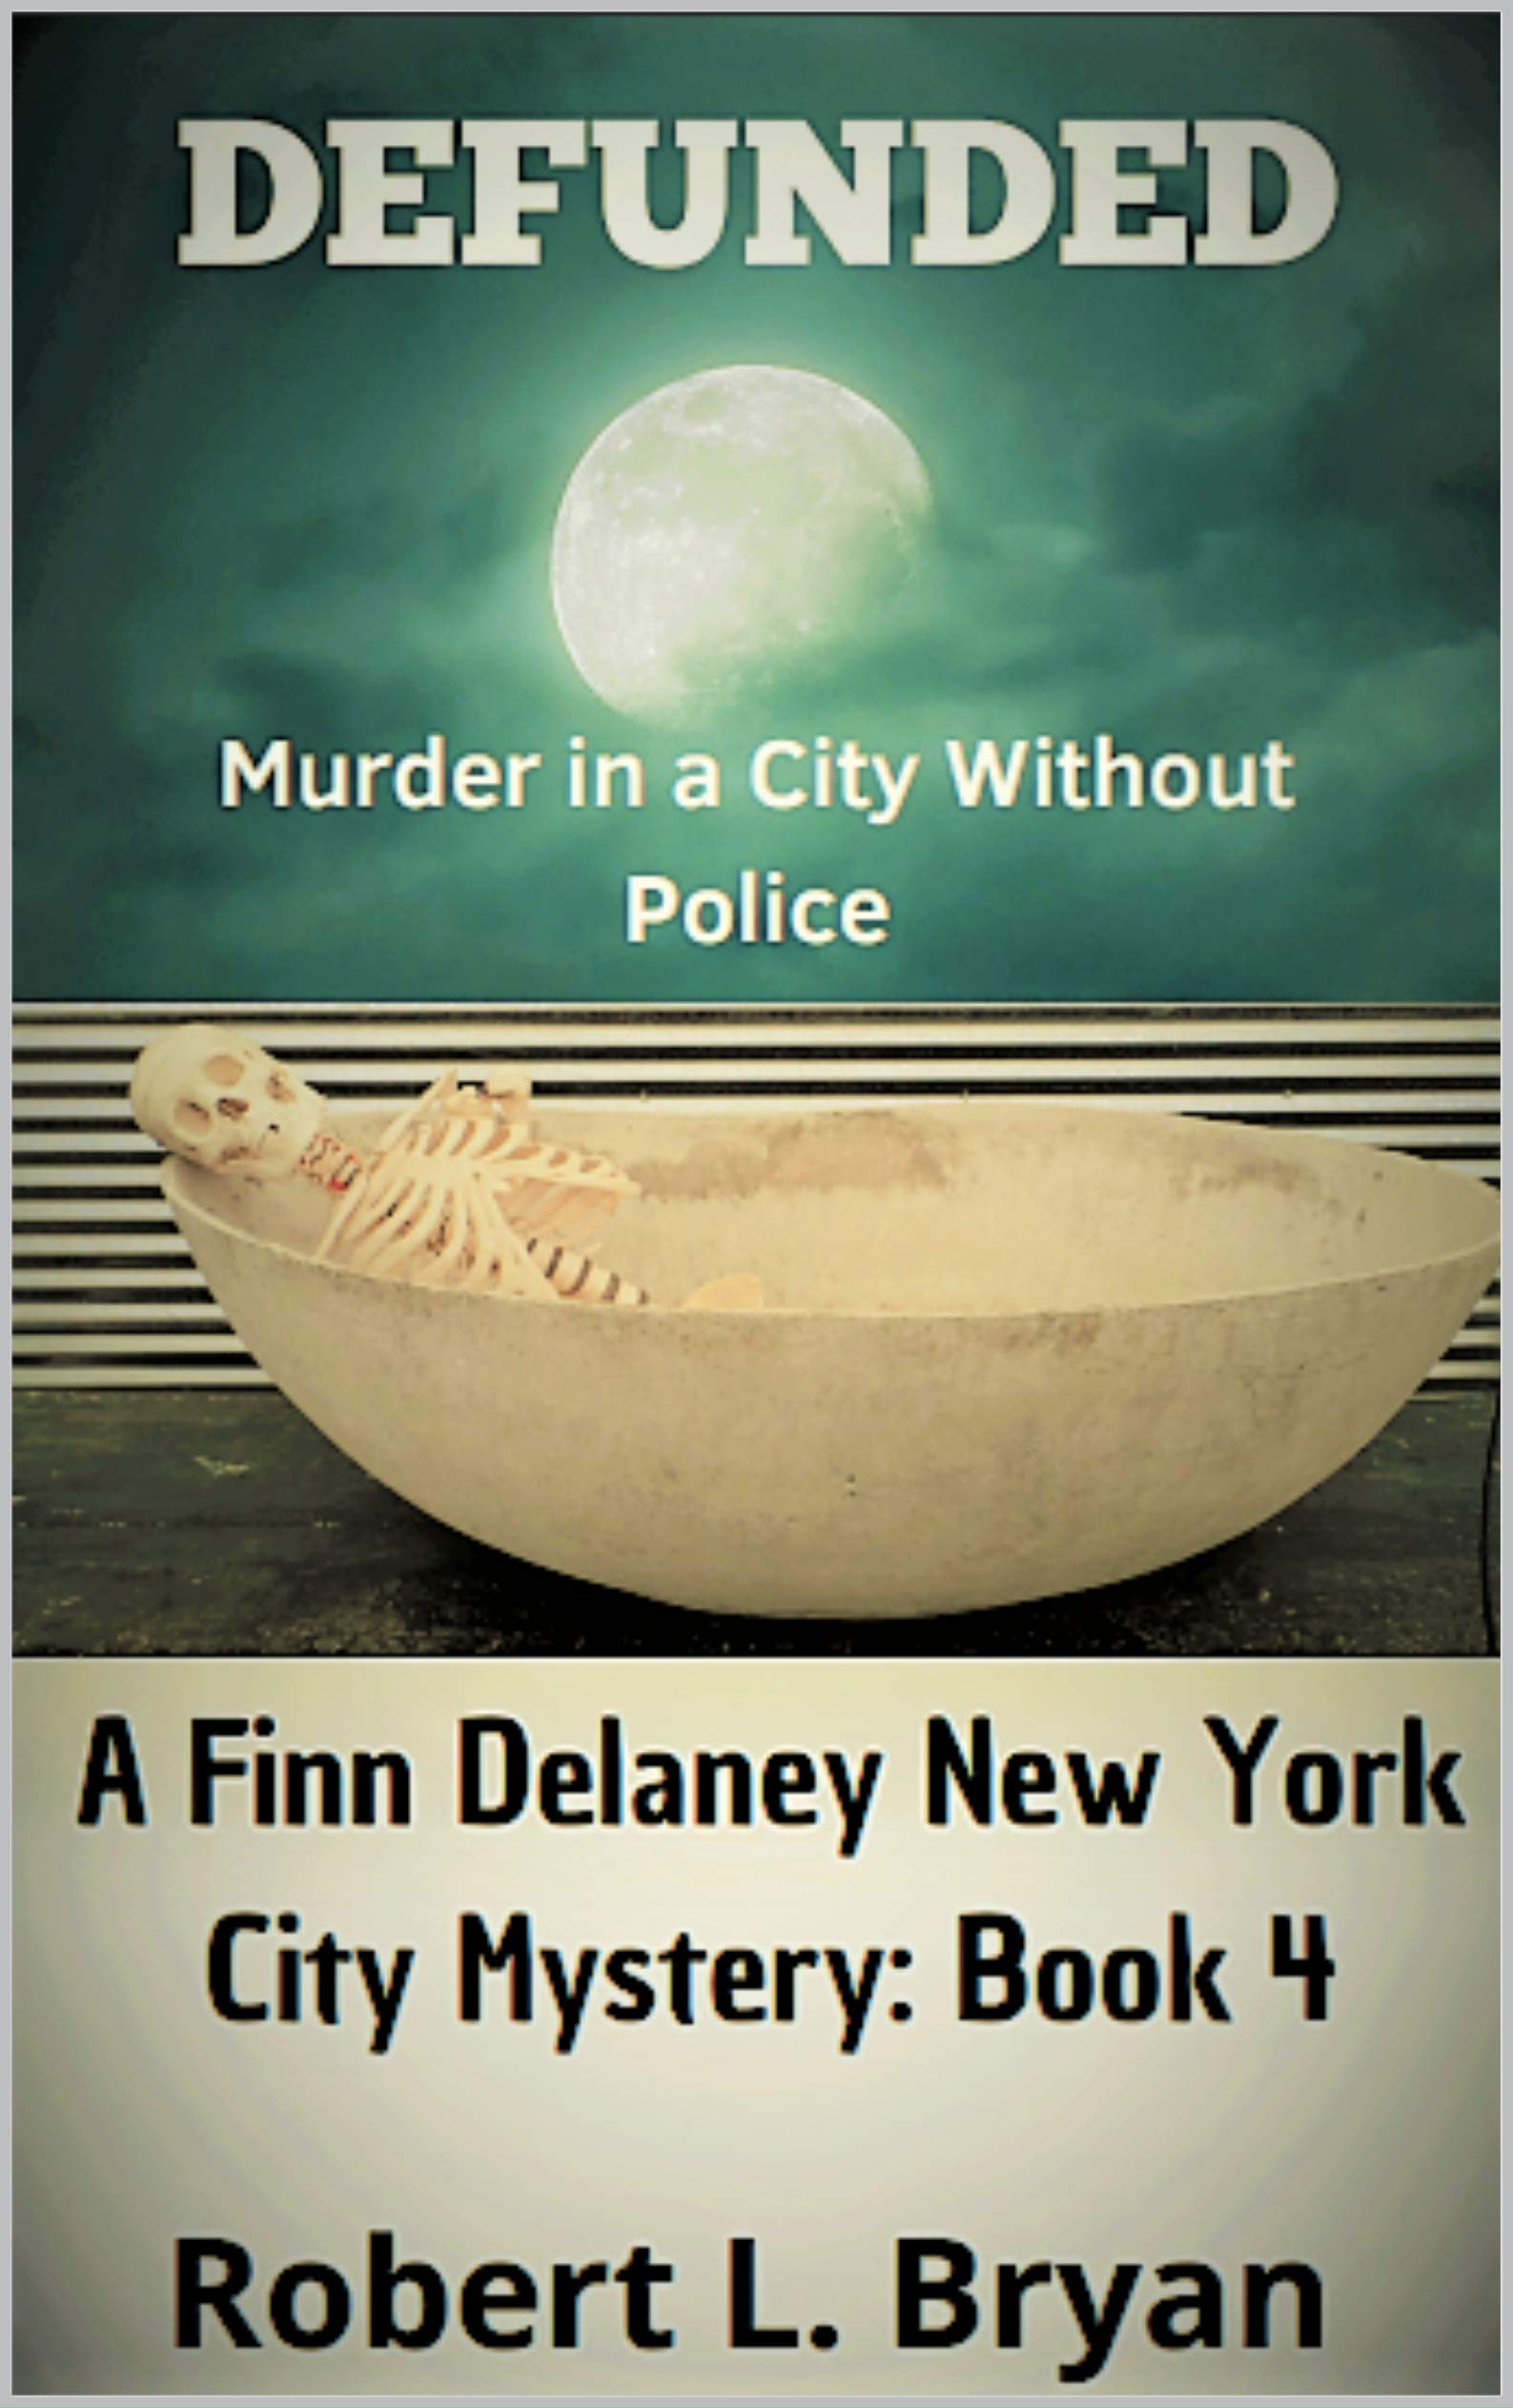 DEFUNDED: Murder in a City without Police (A Finn Delaney New York City Mystery Book 4)